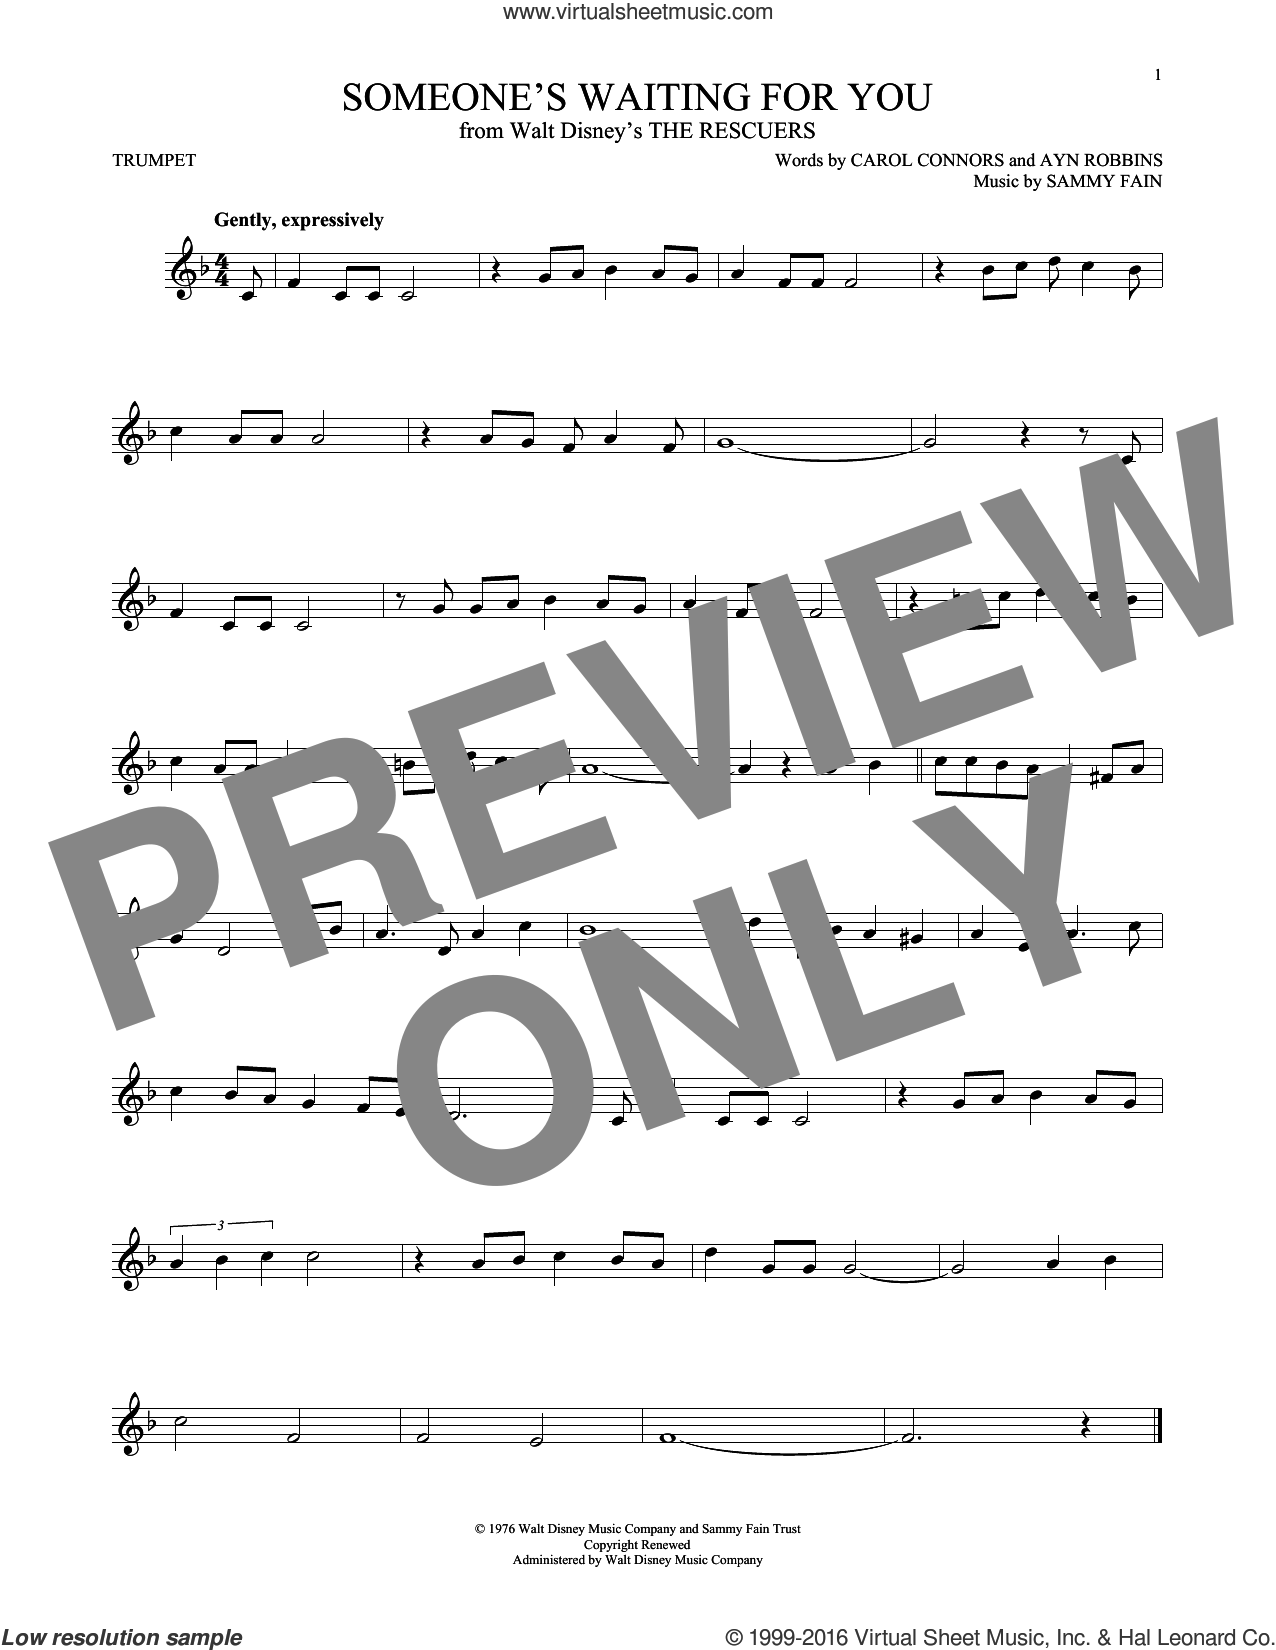 Someone's Waiting For You sheet music for trumpet solo by Carol Connors, Ayn Robbins and Sammy Fain. Score Image Preview.